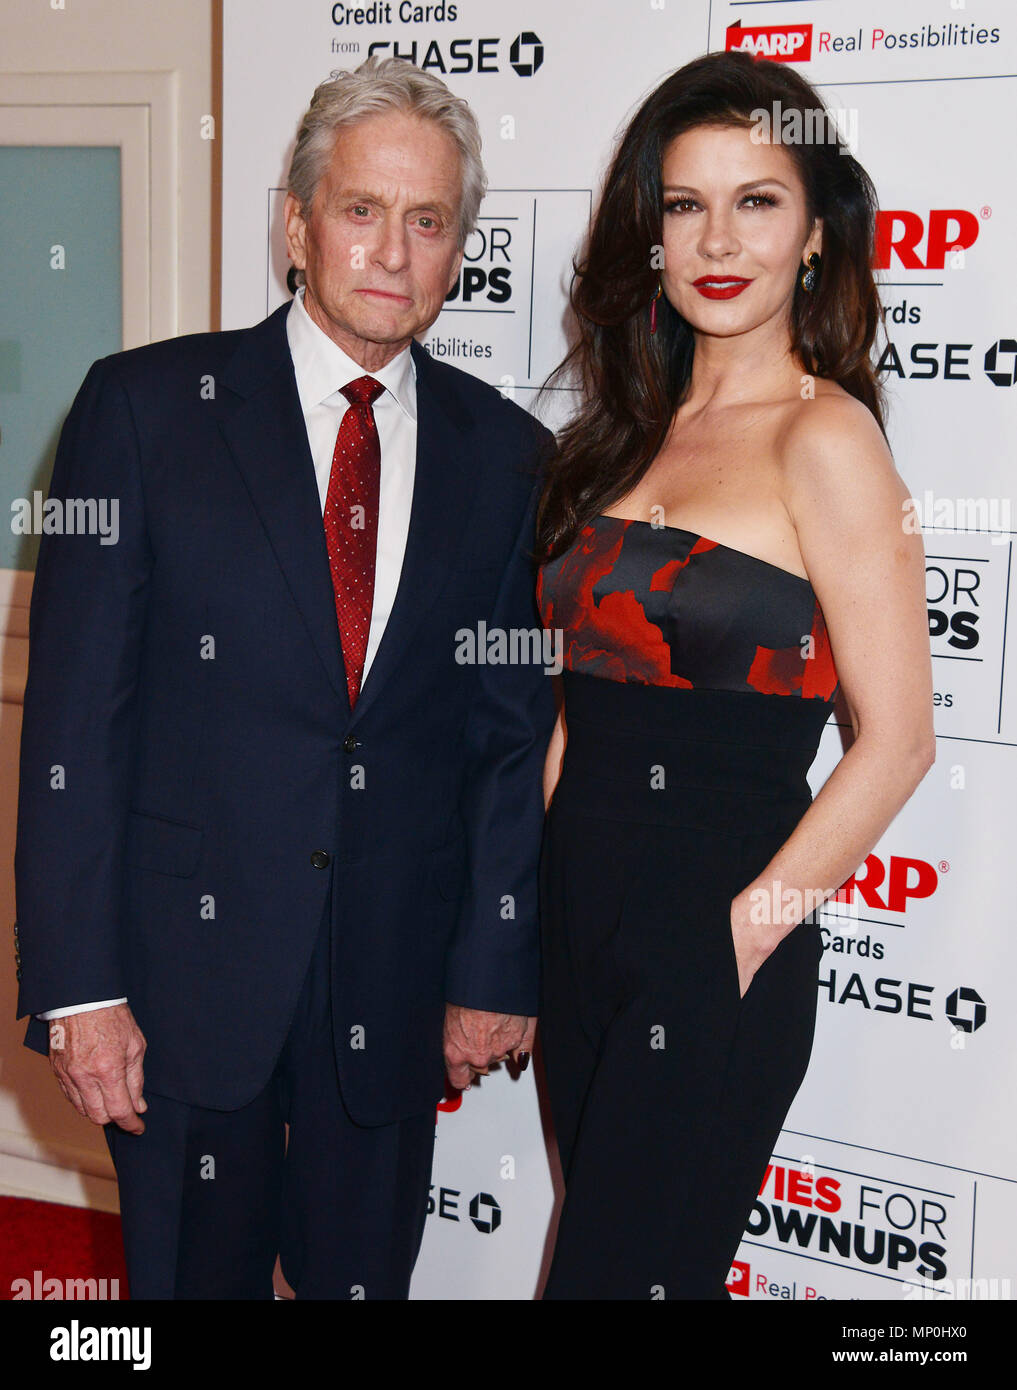 Michael Douglas, Catherine Zeta Jones 050 at the Movies For Grow Ups - AARP - at the Beverly Wilshire Hotel in Los Angeles. February 8, 2016.Michael Douglas, Catherine Zeta Jones 050 ------------- Red Carpet Event, Vertical, USA, Film Industry, Celebrities,  Photography, Bestof, Arts Culture and Entertainment, Topix Celebrities fashion /  Vertical, Best of, Event in Hollywood Life - California,  Red Carpet and backstage, USA, Film Industry, Celebrities,  movie celebrities, TV celebrities, Music celebrities, Photography, Bestof, Arts Culture and Entertainment,  Topix, vertical,  family from fro - Stock Image